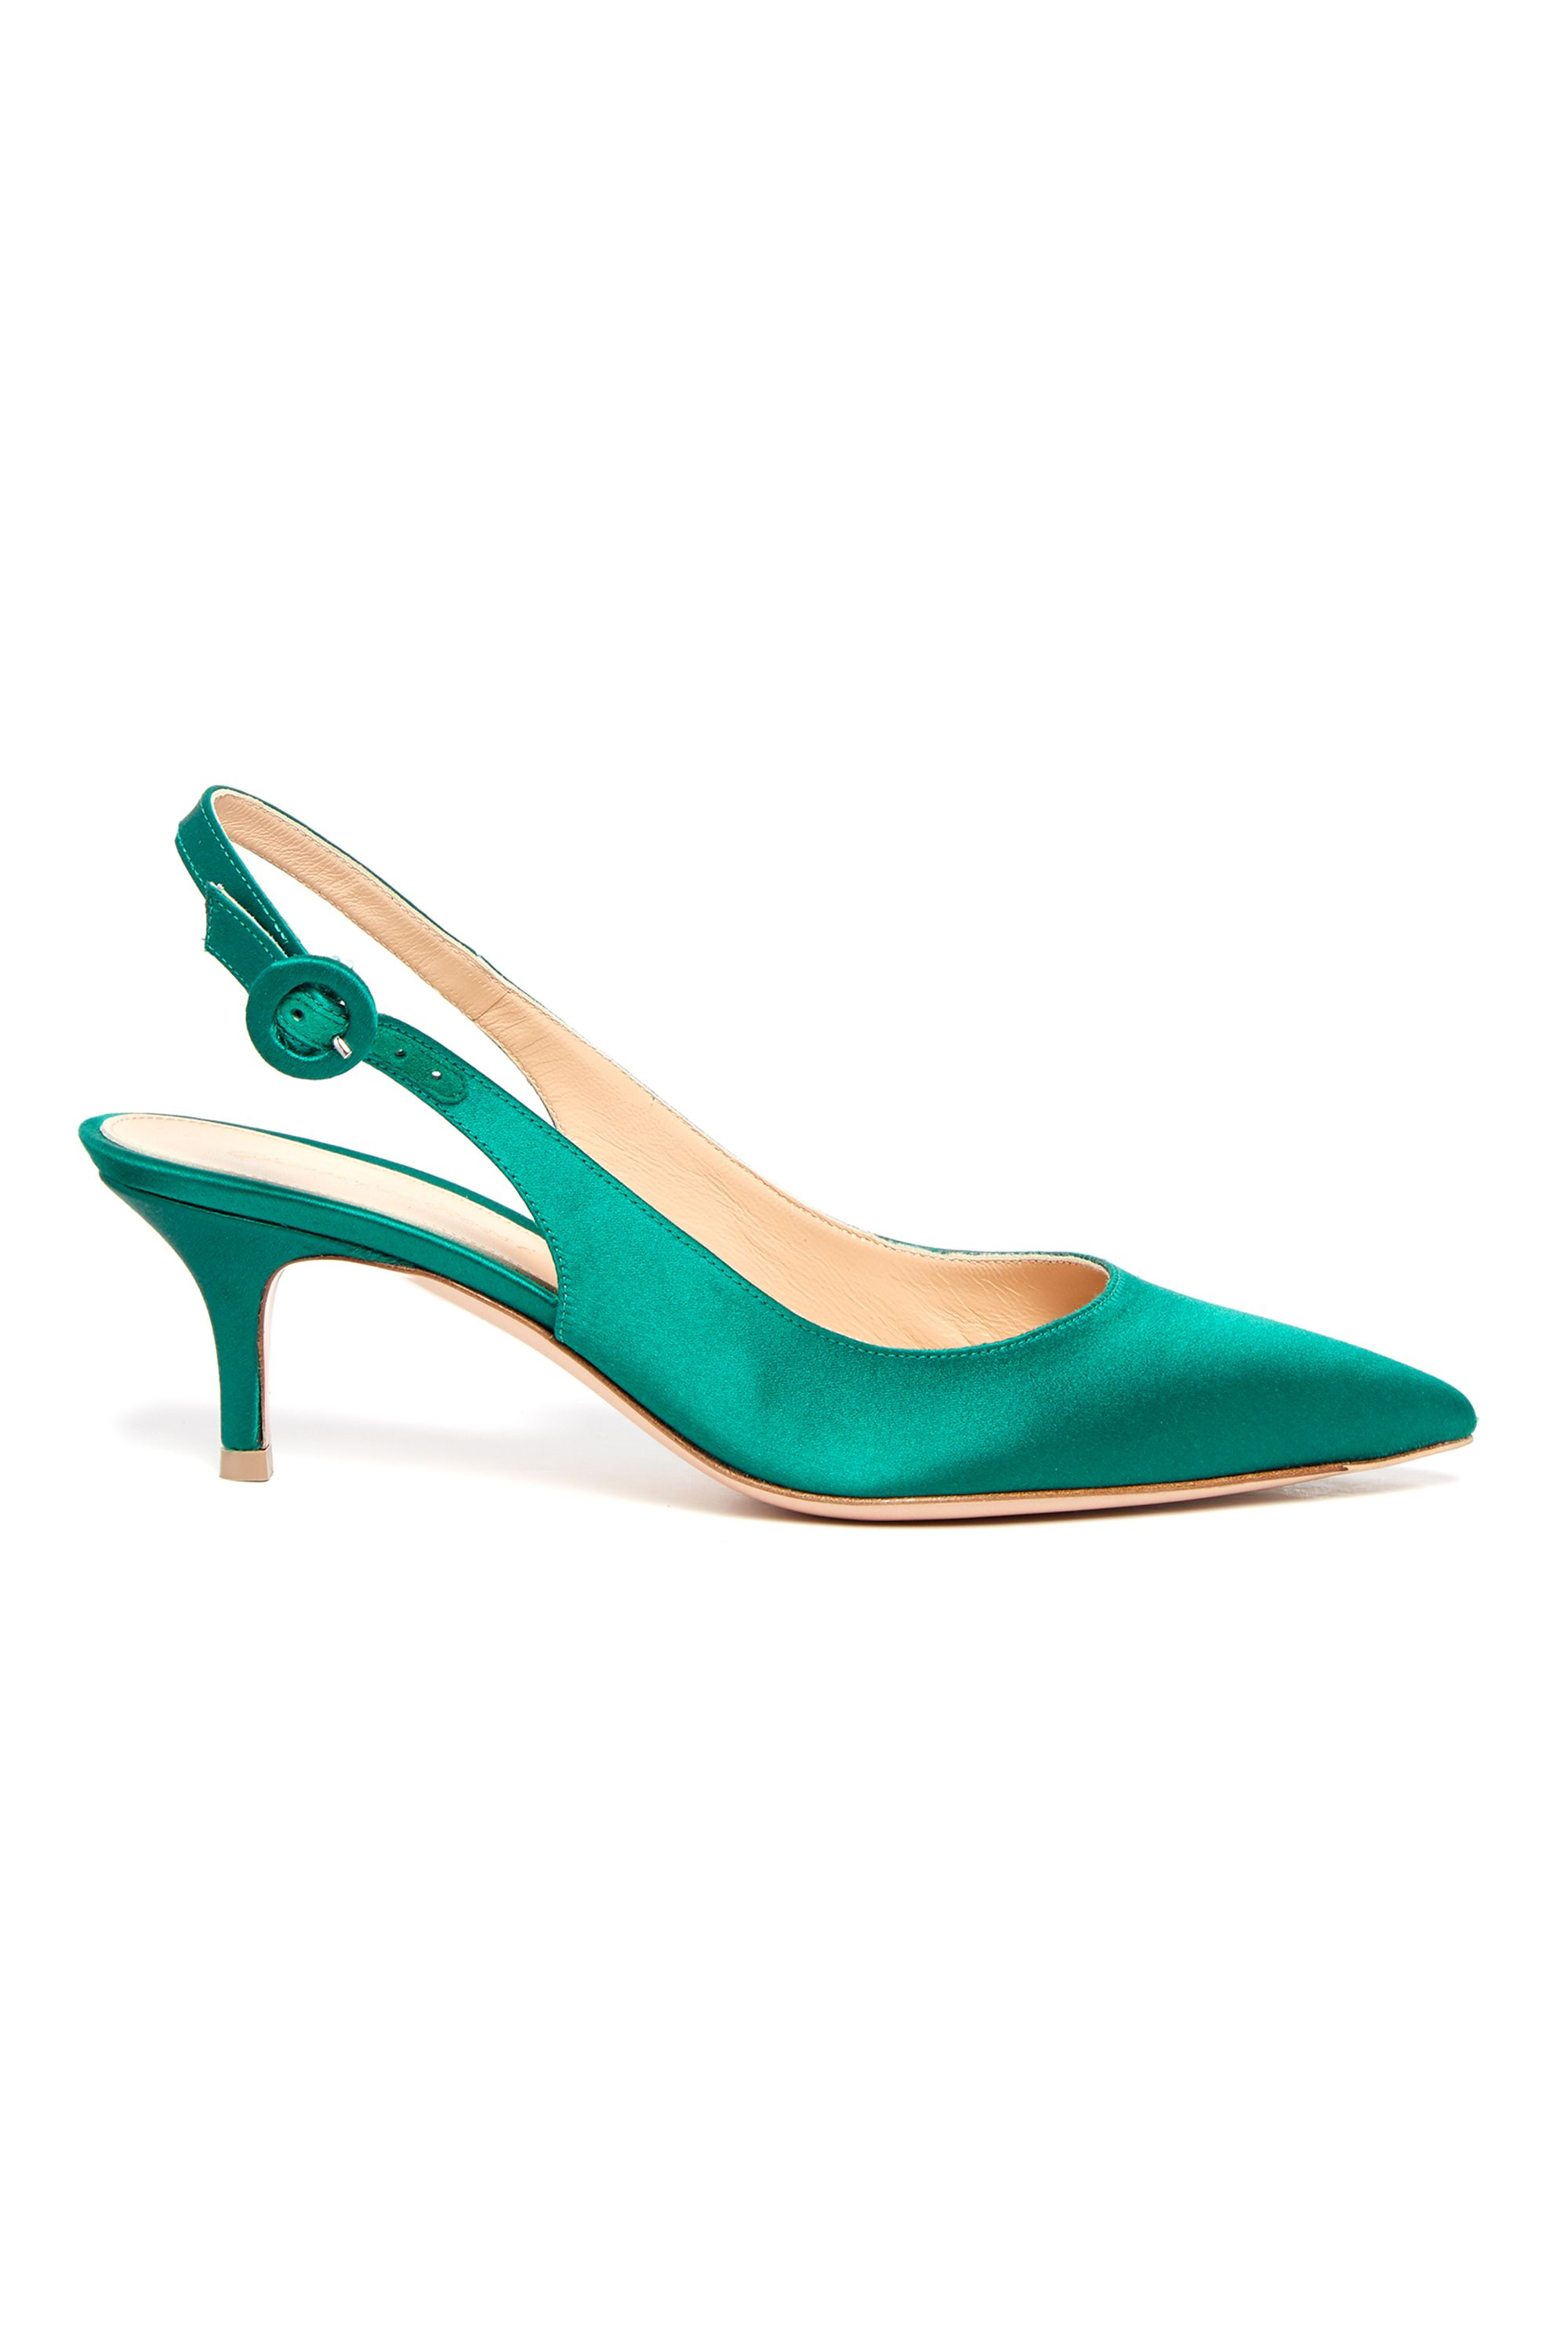 "<p> Gianvito Rossi, Anna<br> slingback kitten-heel satin pumps, $550, <a href=""http://www.matchesfashion.com/products/Gianvito-Rossi-Anna-slingback-kitten-heel-satin-pumps-1095795"">matchesfashion.com</a></p><p><span class=""redactor-invisible-space"" data-verified=""redactor"" data-redactor-tag=""span"" data-redactor-class=""redactor-invisible-space""></span></p>"